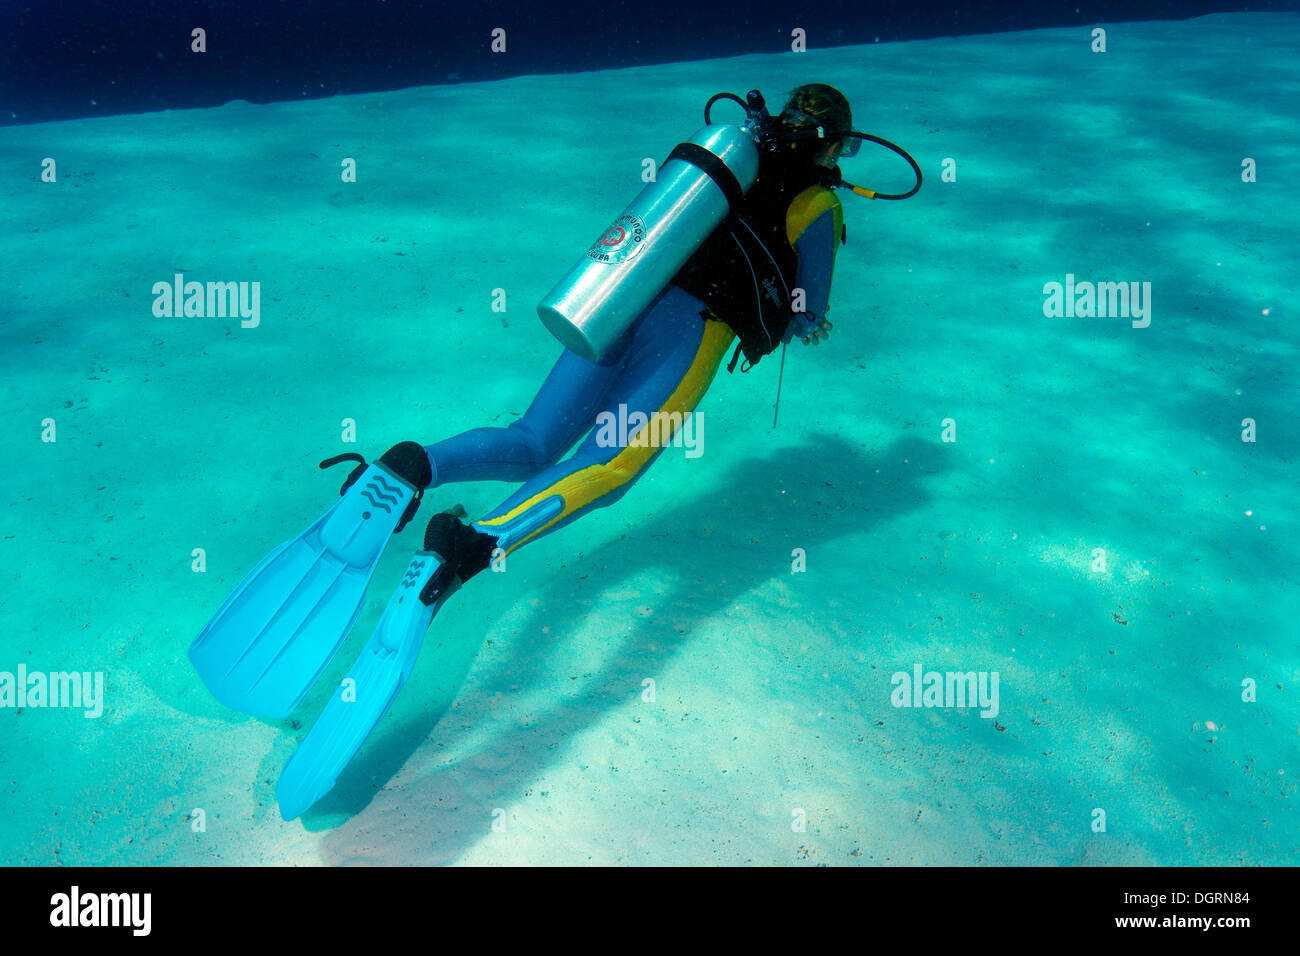 Diver, South China Sea, Balnek, -, Busuanga Island, Calamian Islands, Palawan, Mimaropa, Philippines - Stock Image